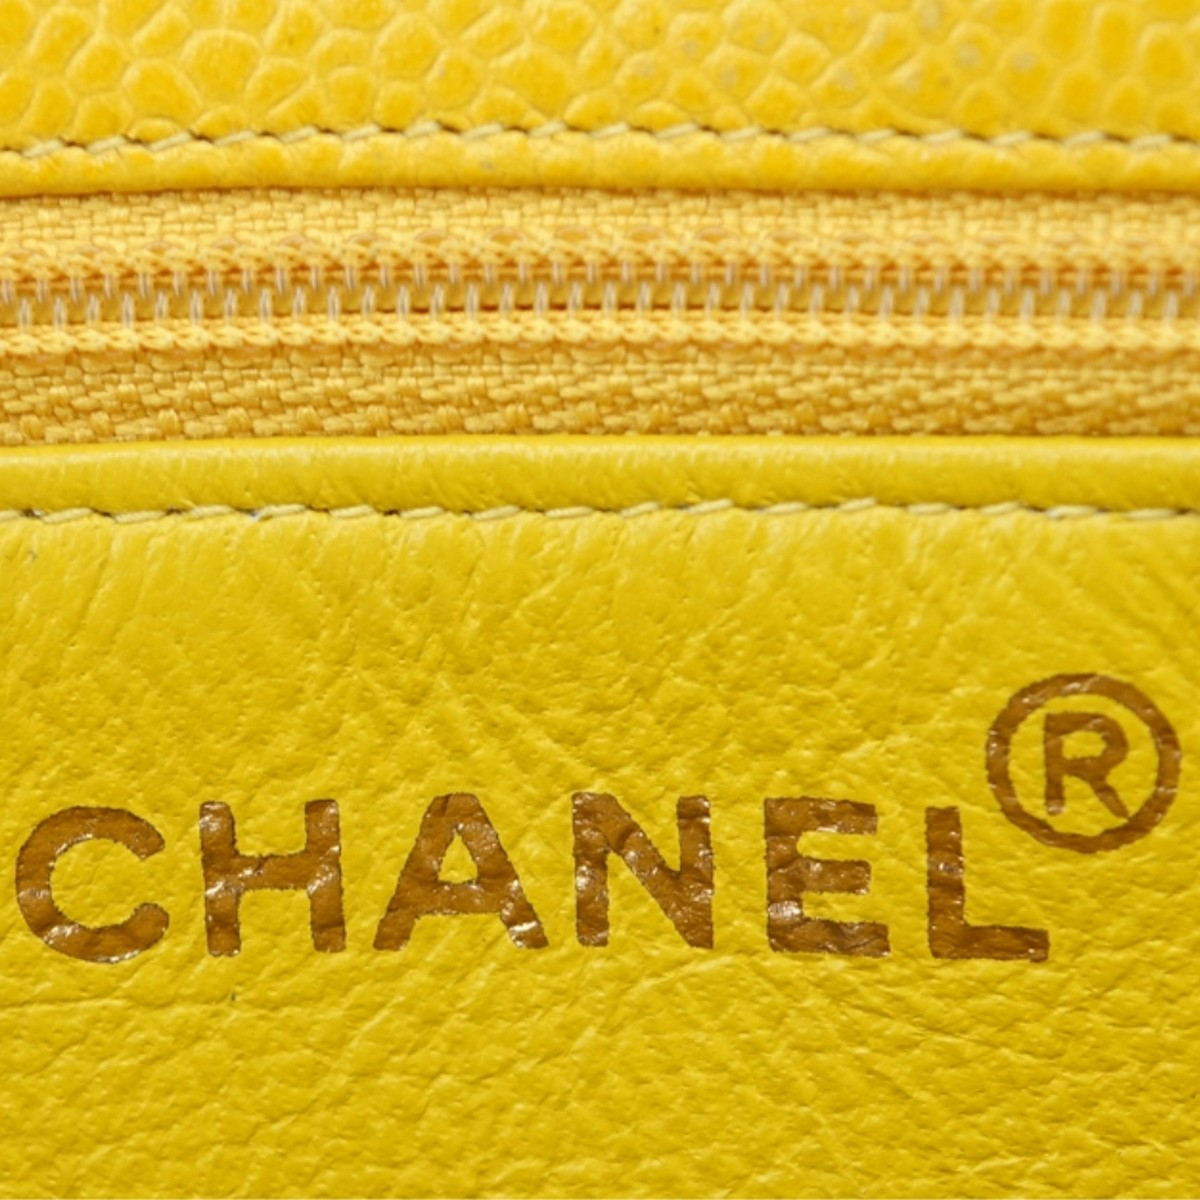 Chanel Yellow Caviar Leather Vintage Tote